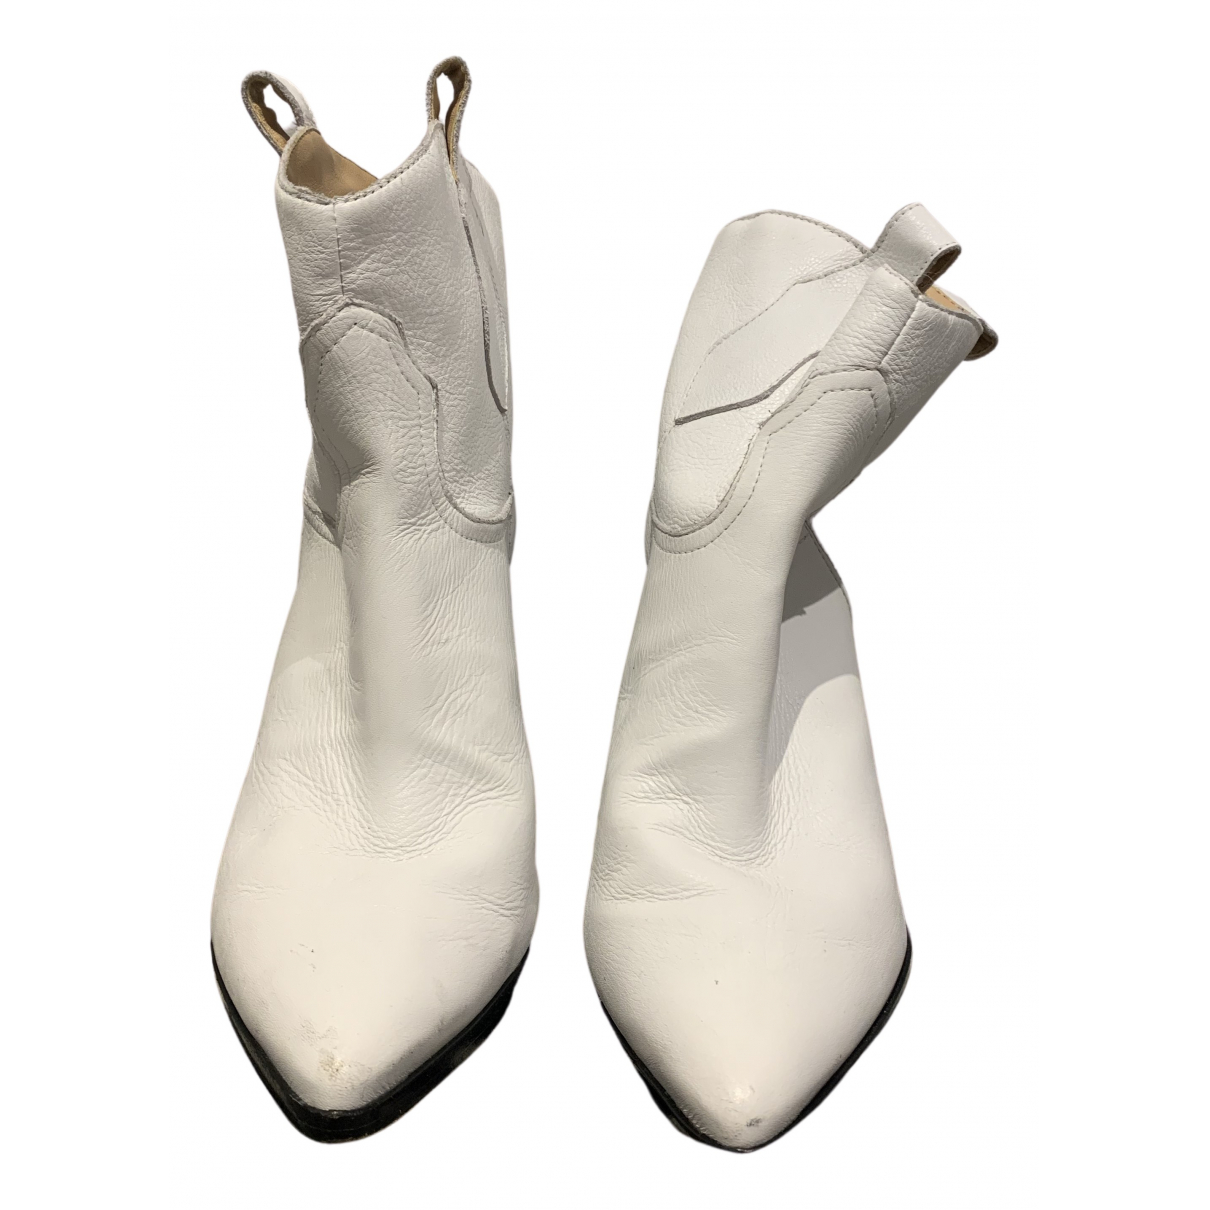 Schutz N White Leather Ankle boots for Women 7.5 UK